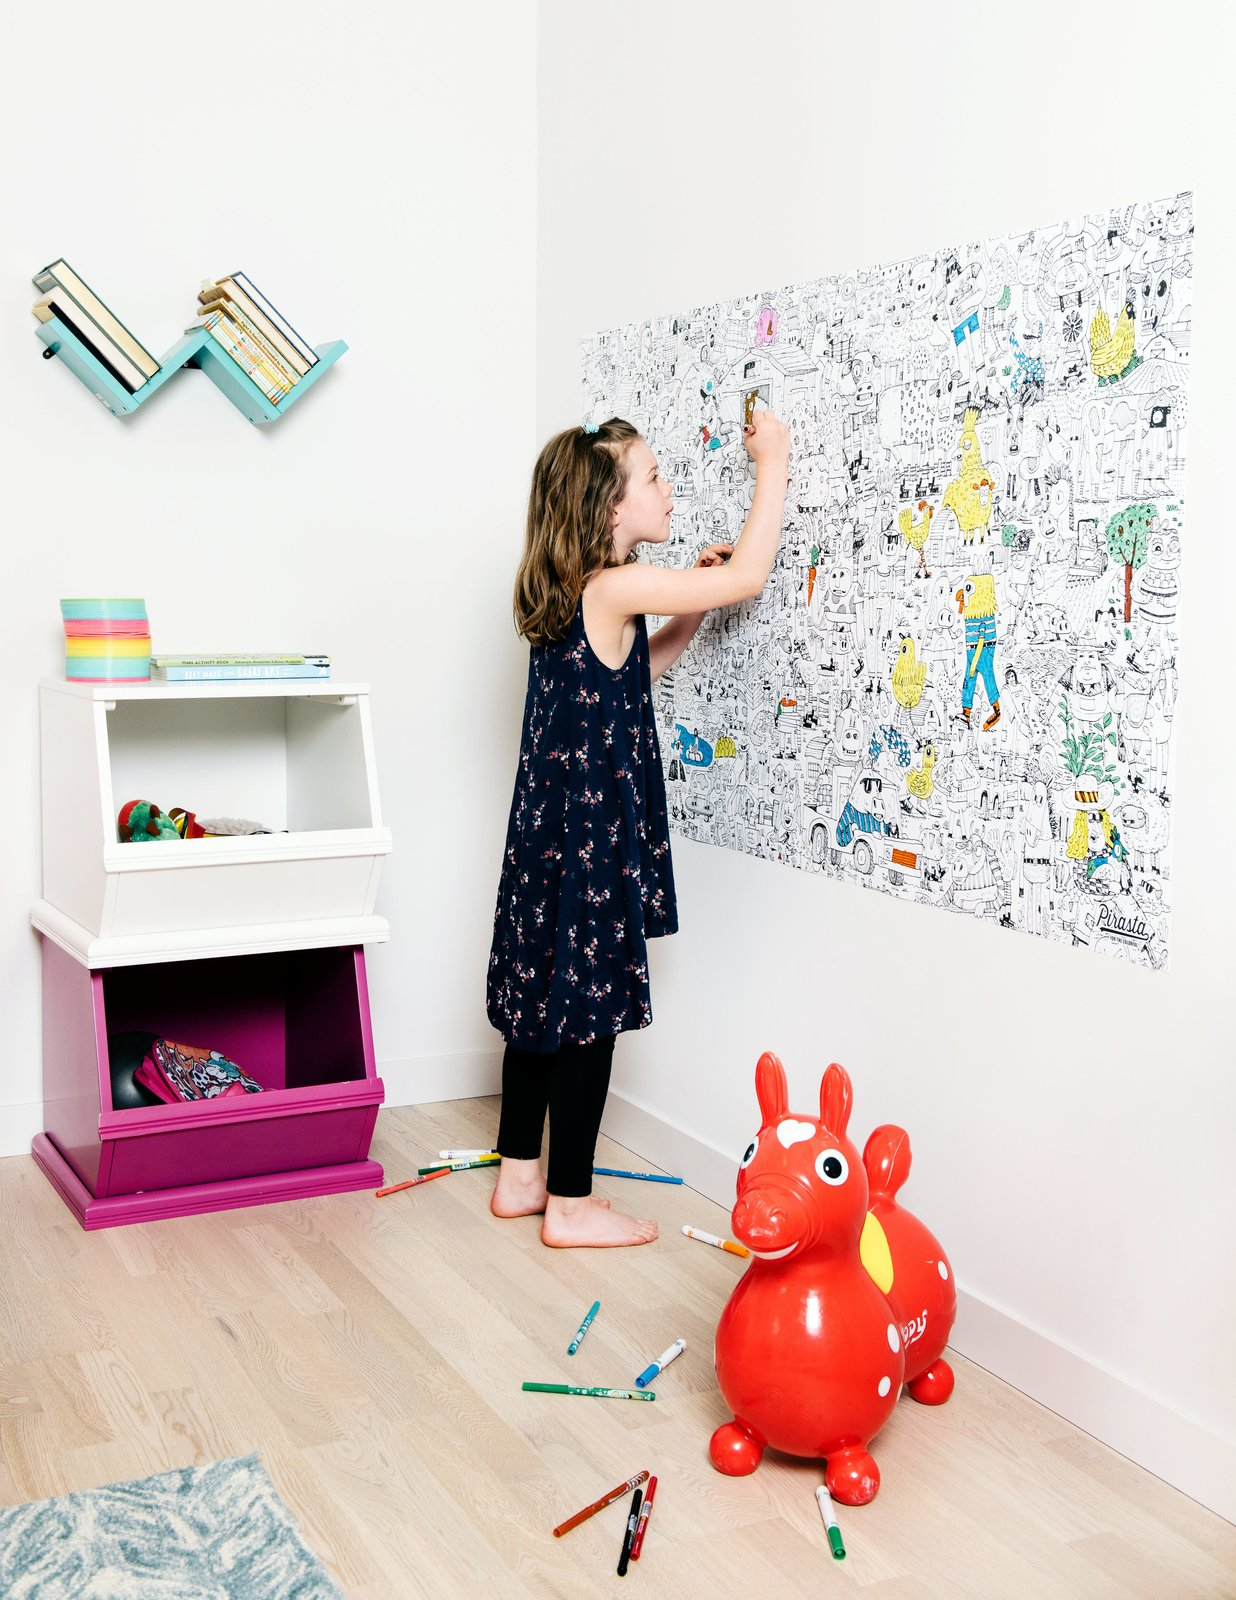 Passive House children's room with child coloring on large coloring book wall poster.